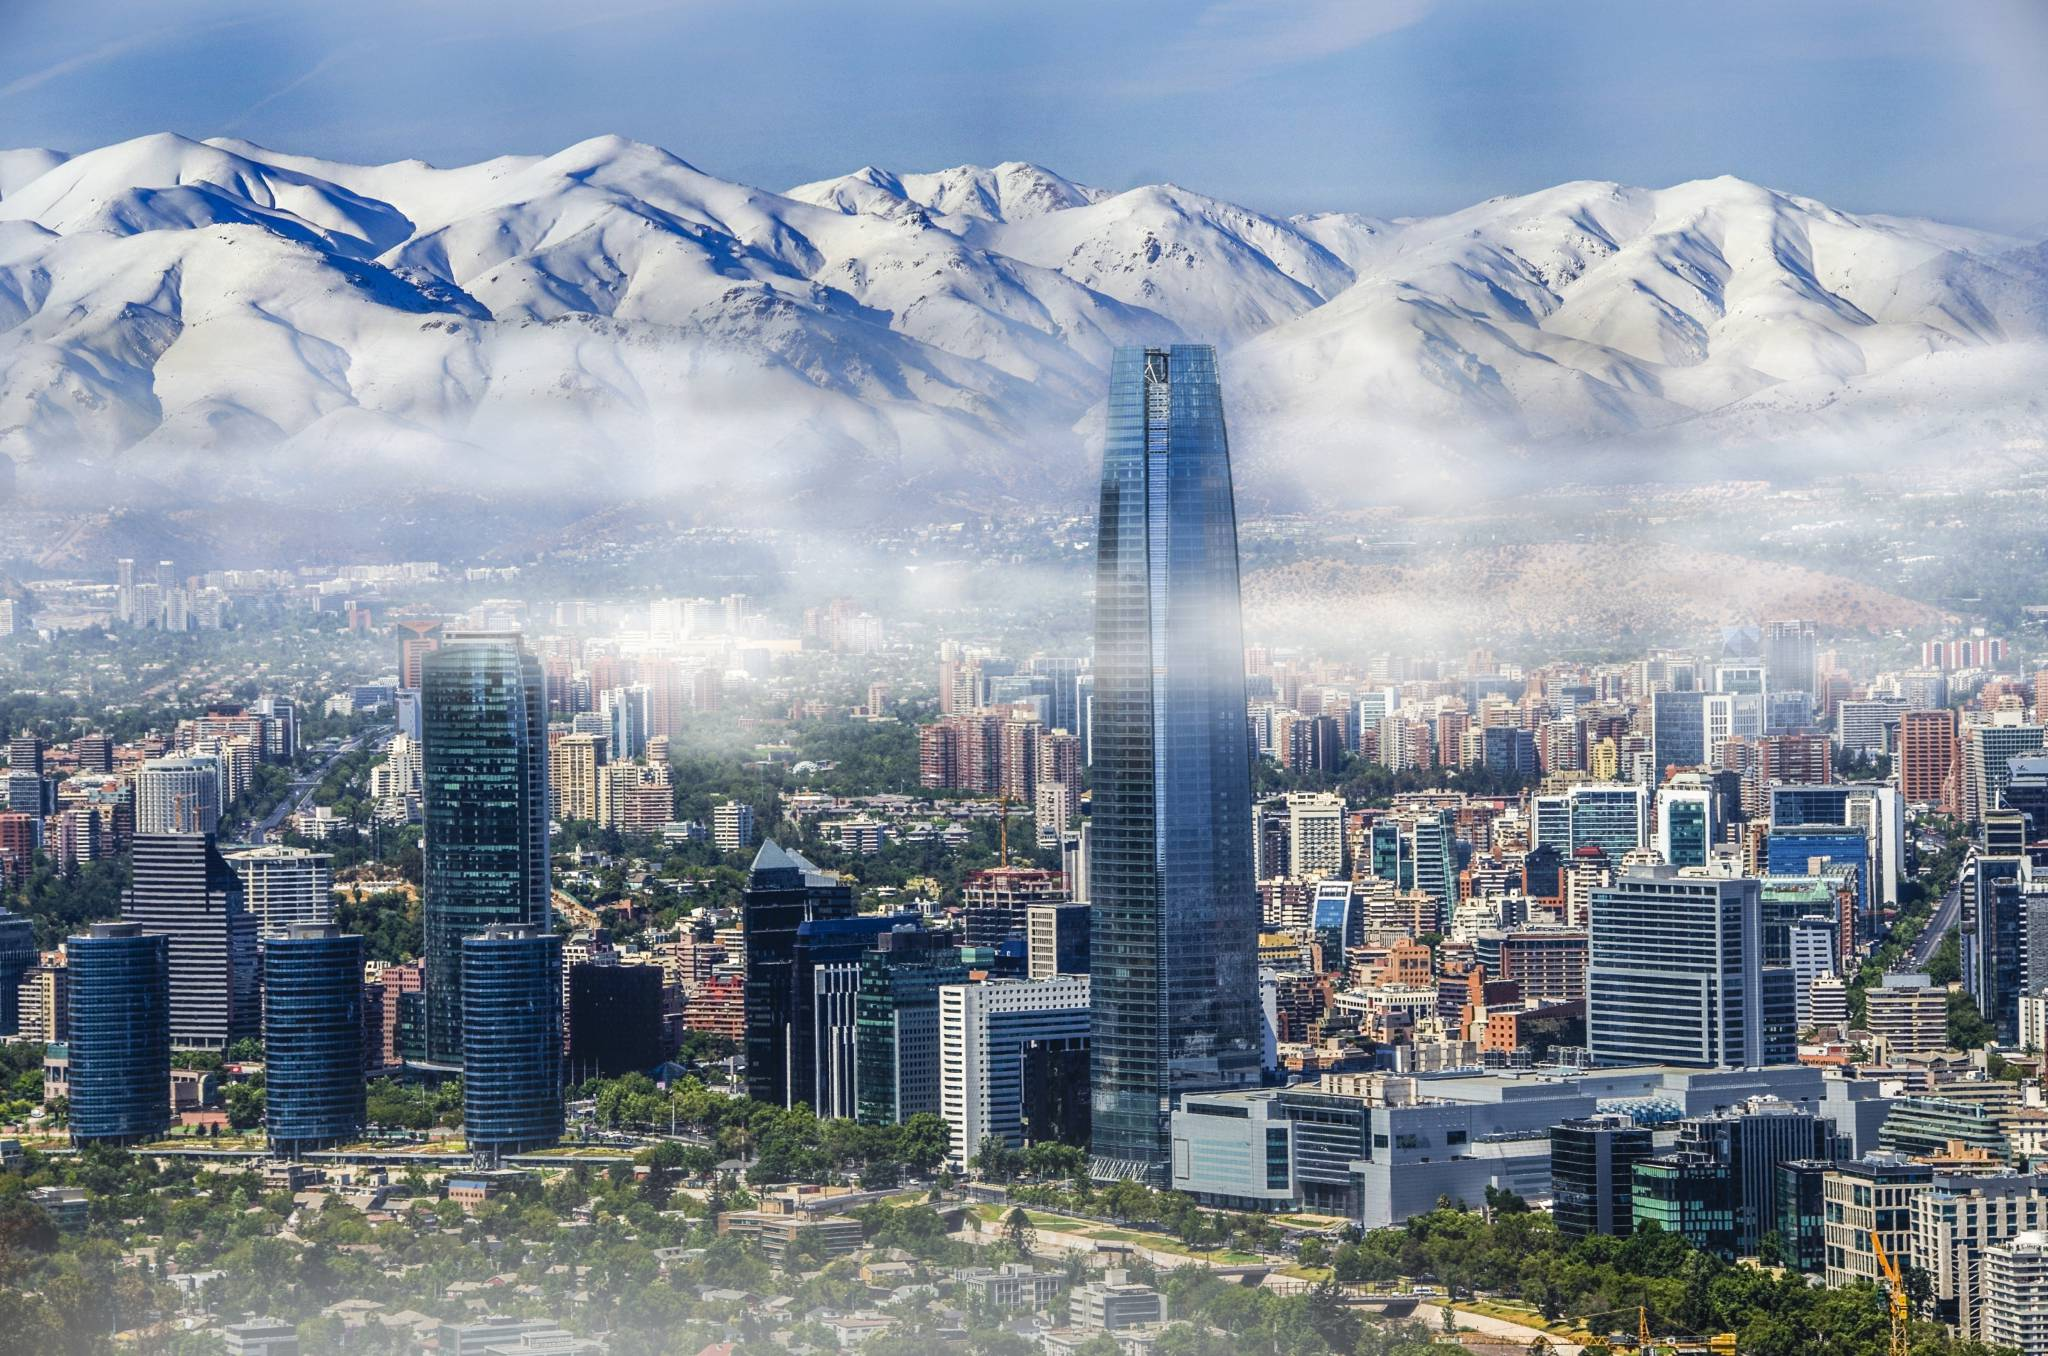 eTips Santiago de Chile Travel Guide with offline maps